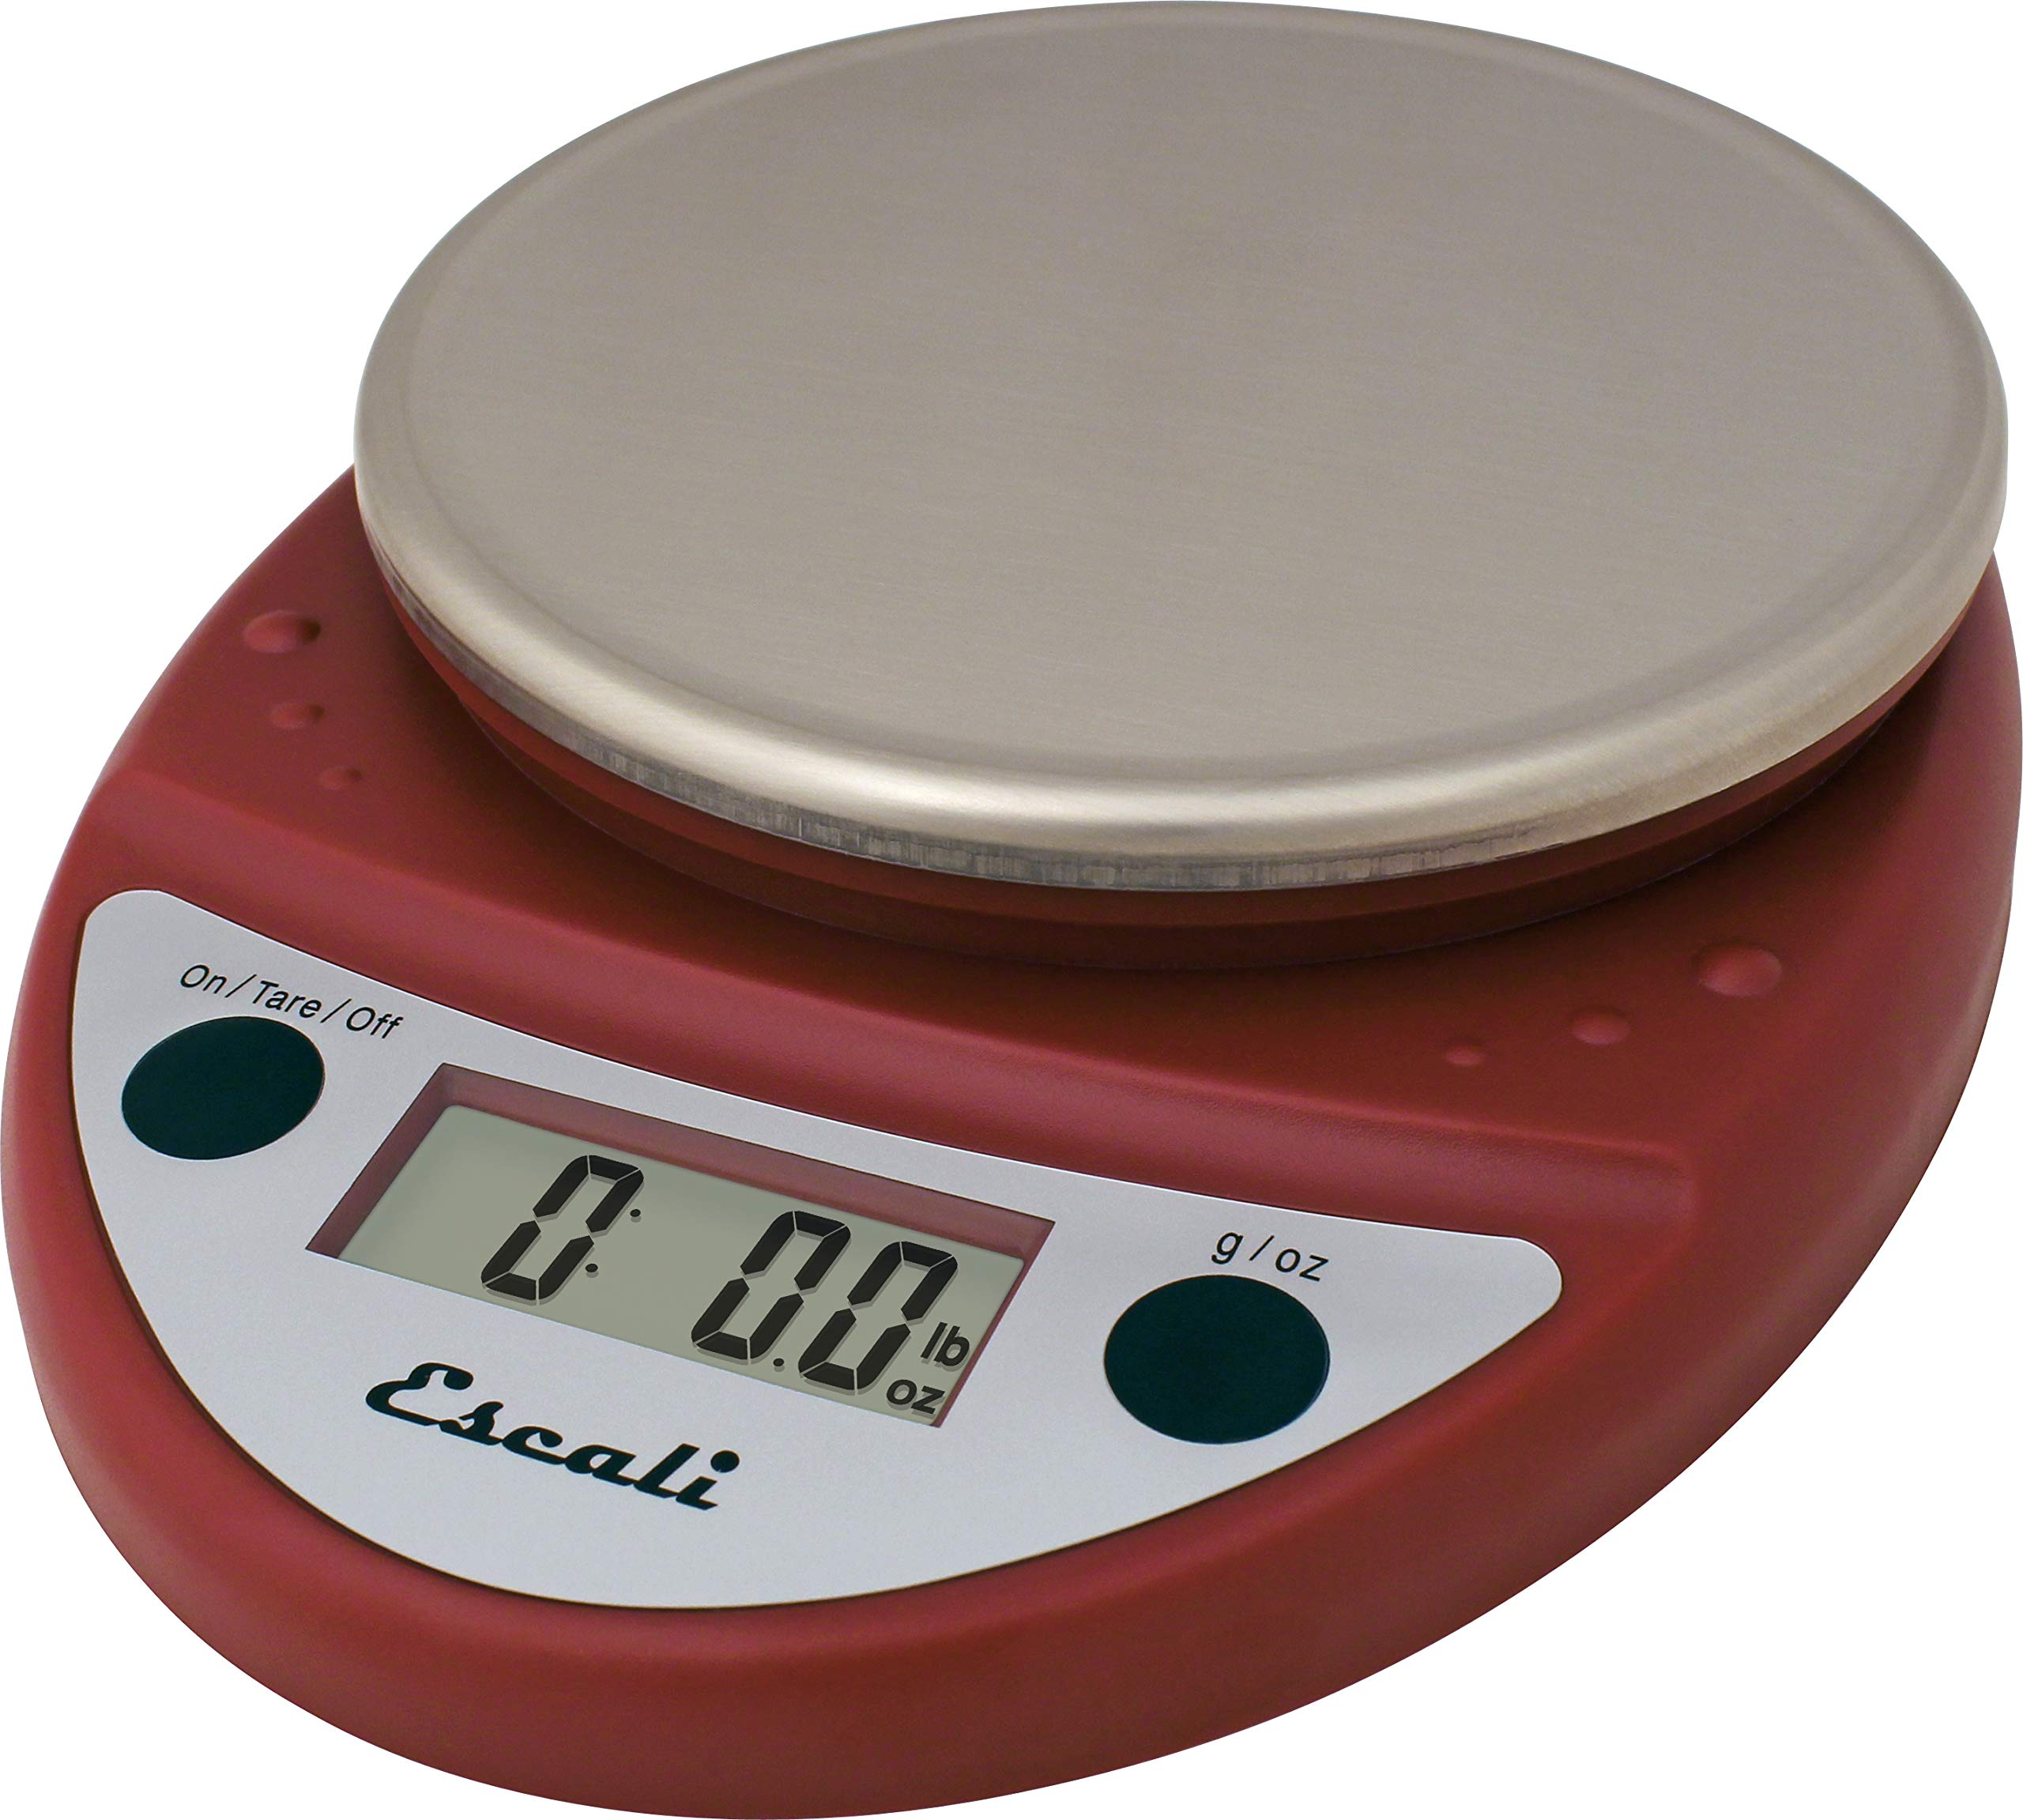 San Jamar SCDGP11RD Professional Round Digital Food/Kitchen Scale, 11 lb Capacity, Red